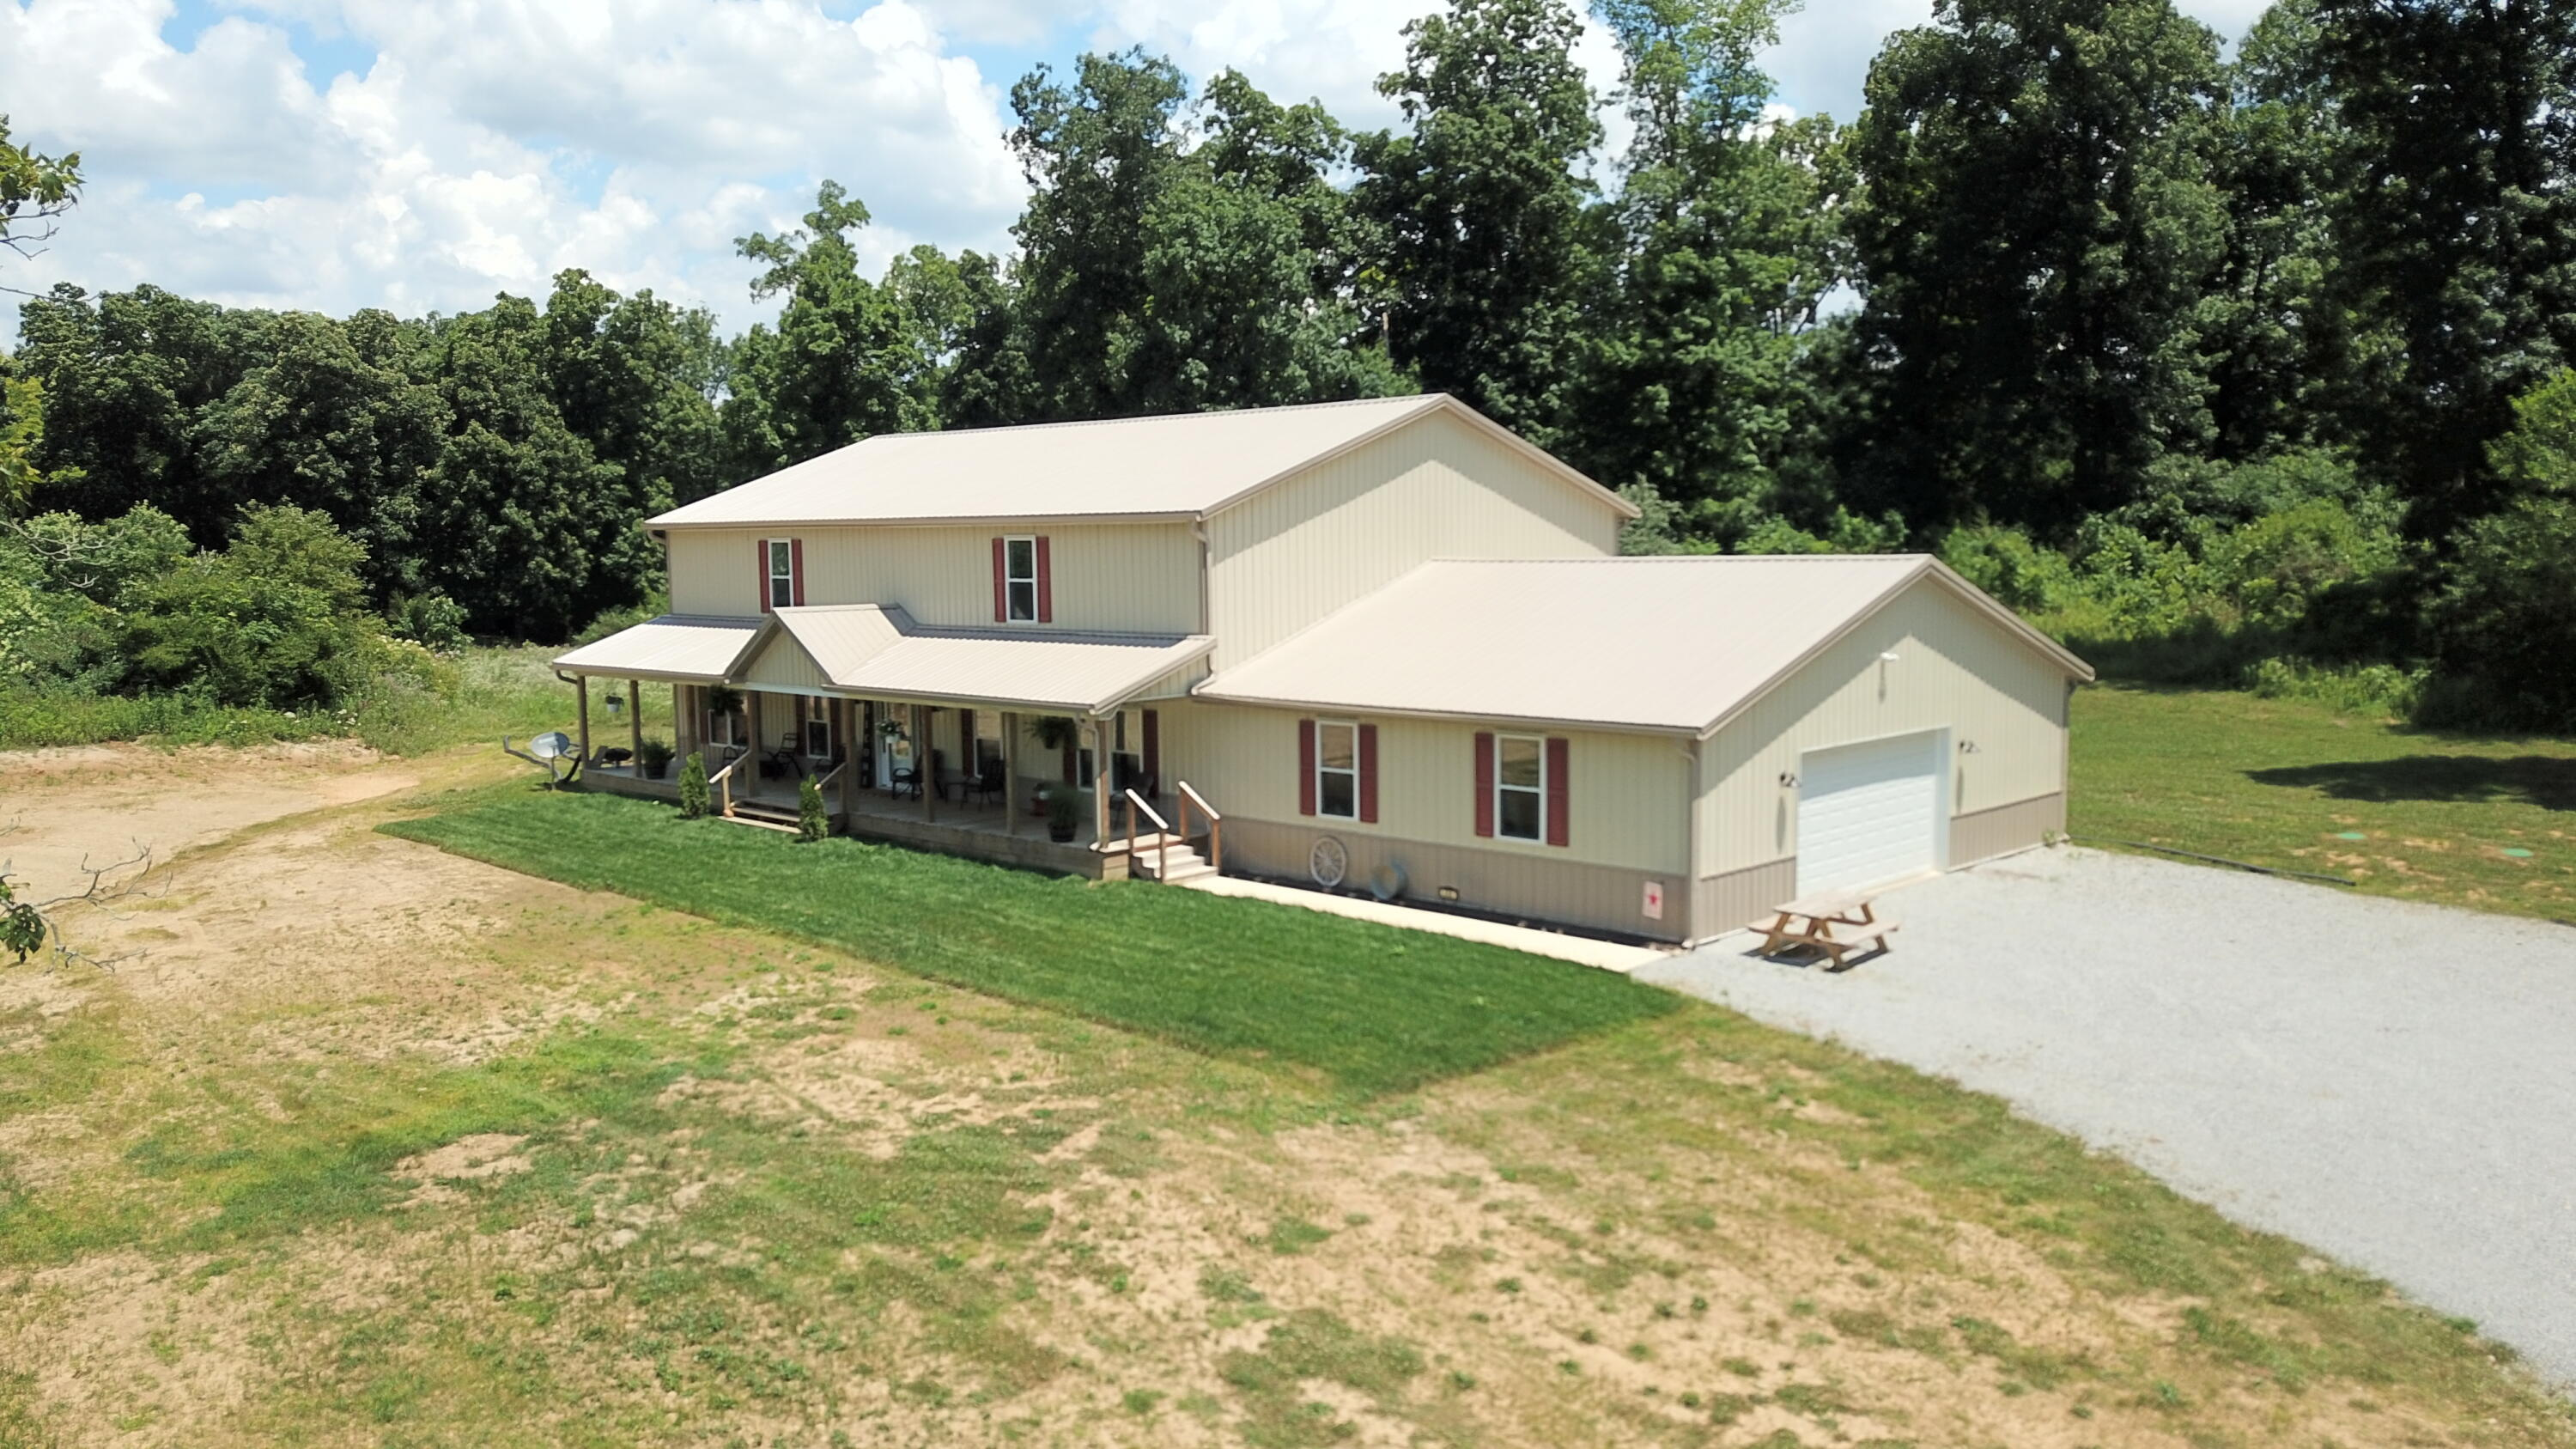 Photo 1 for 494 Newlove Rd South Charleston, OH 45368